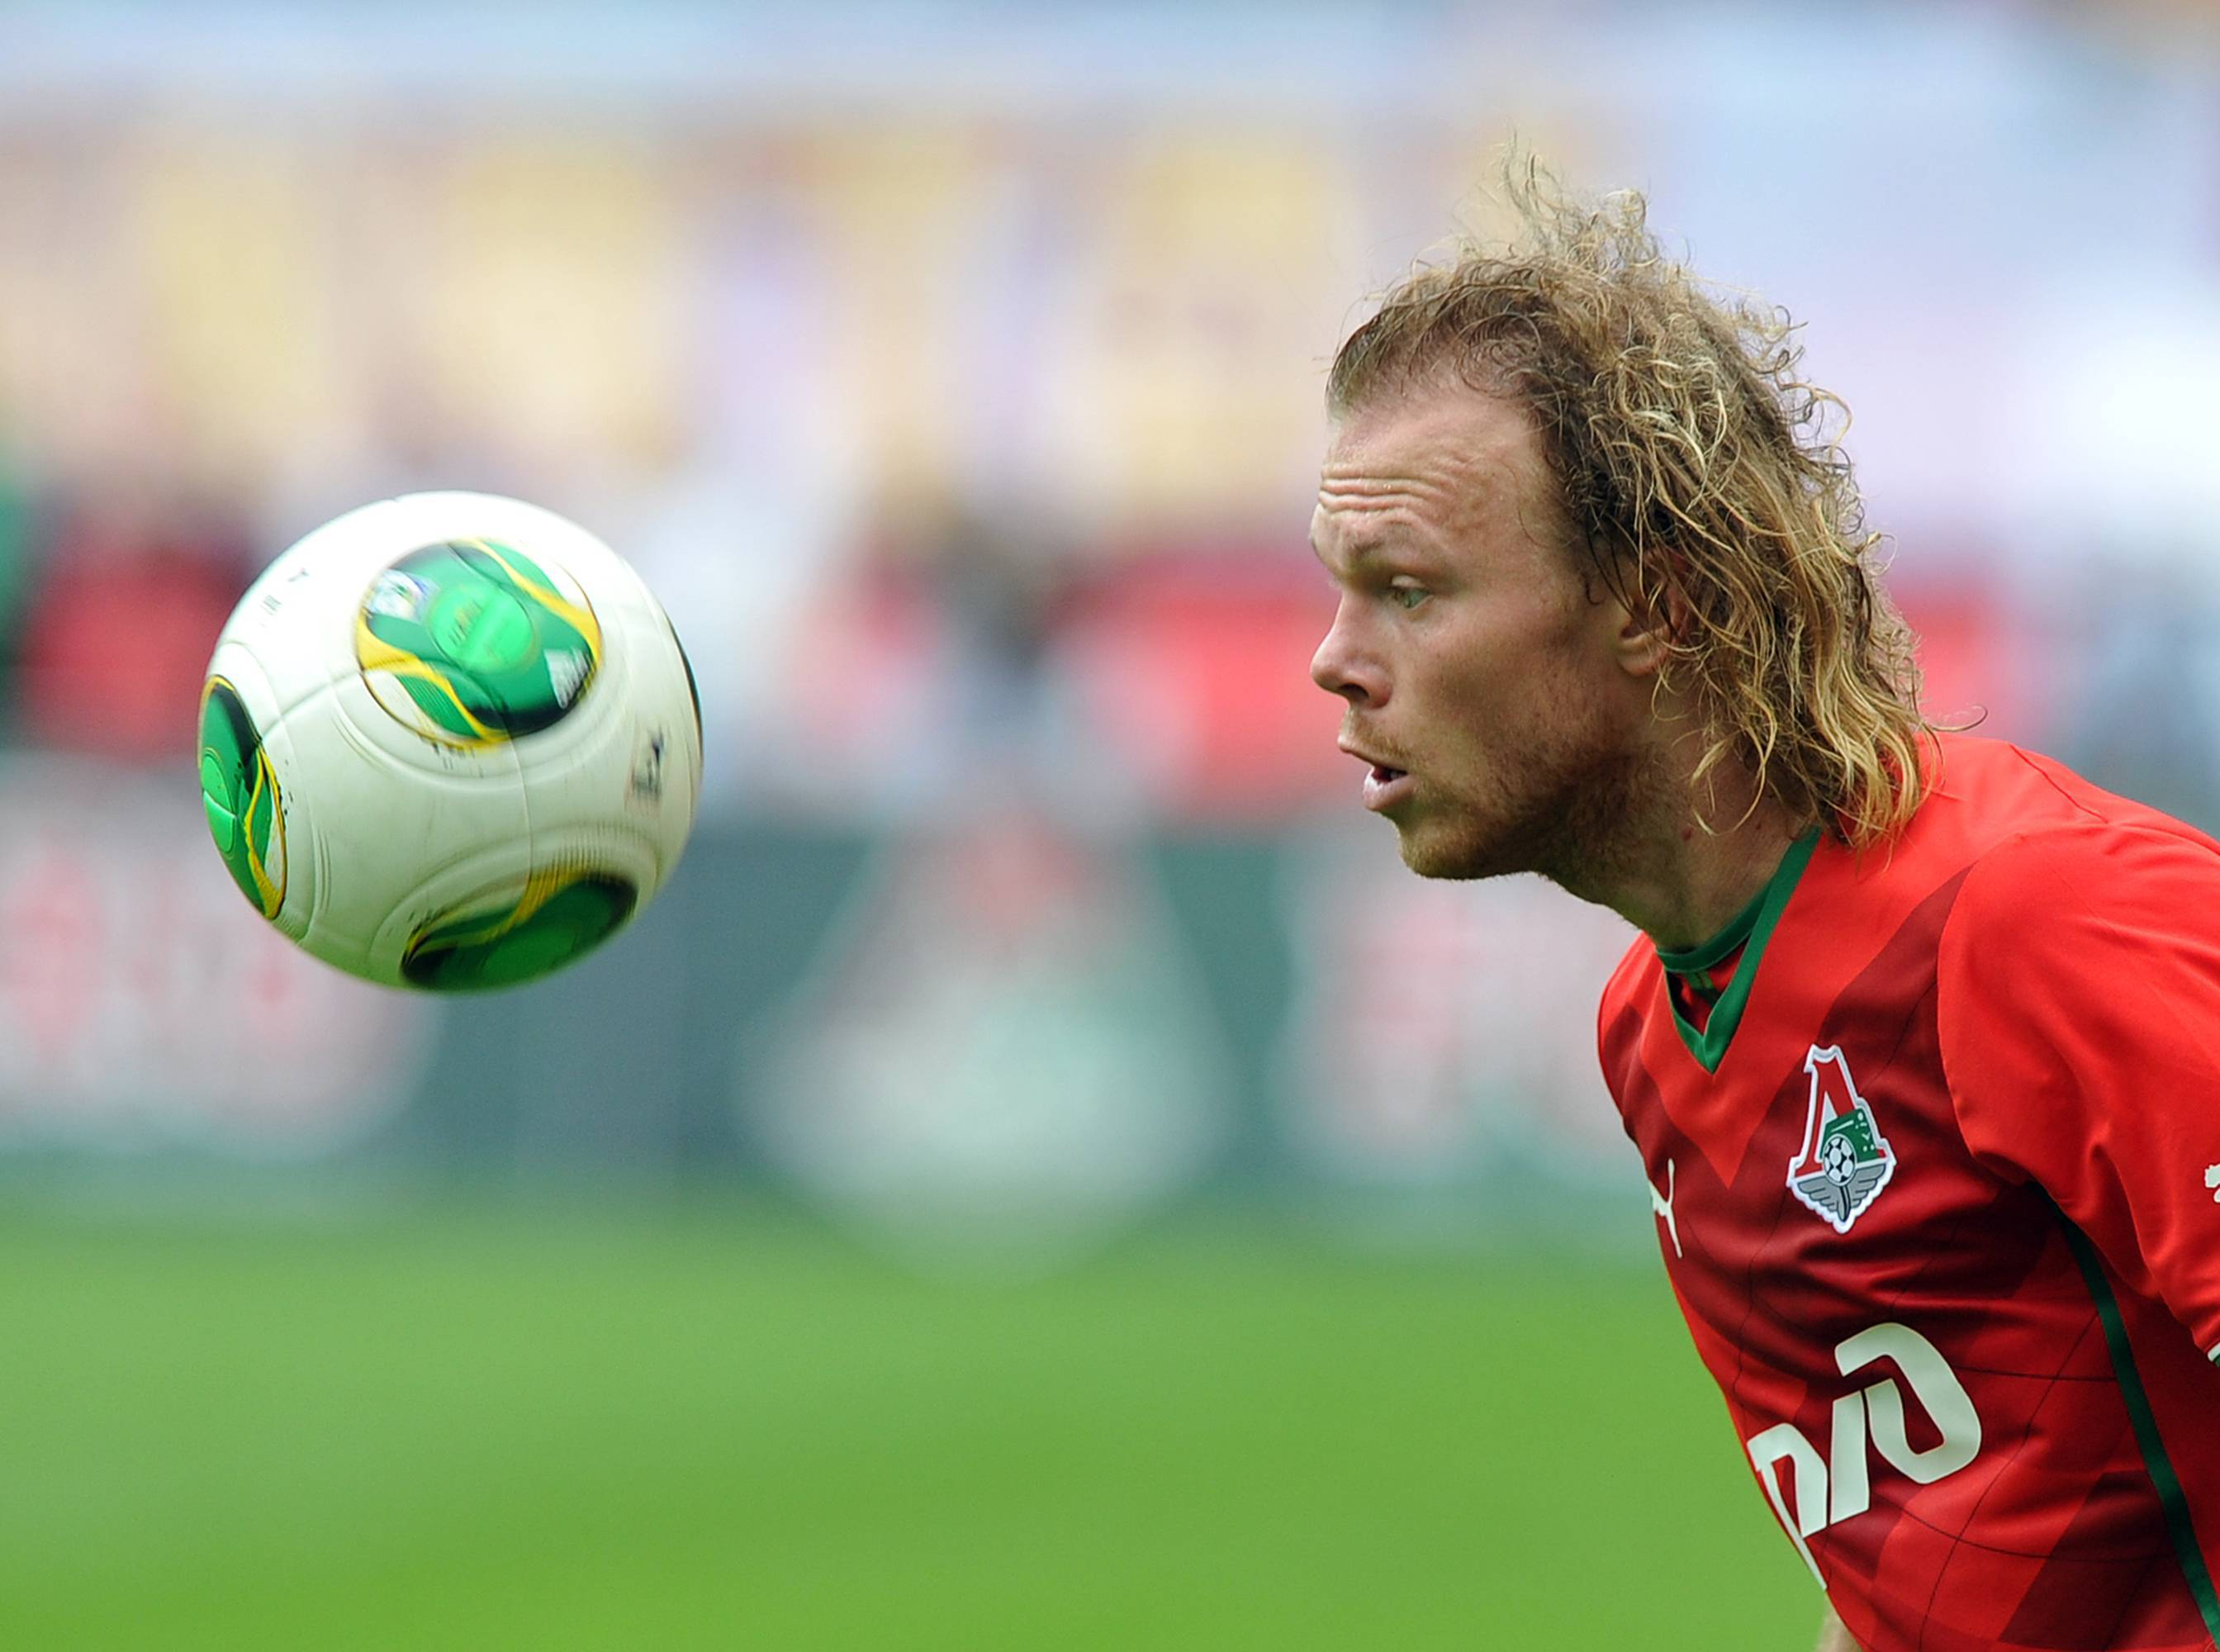 Lokomotiv Moscow Vitaliy Denisov wallpapers and images - wallpapers ...